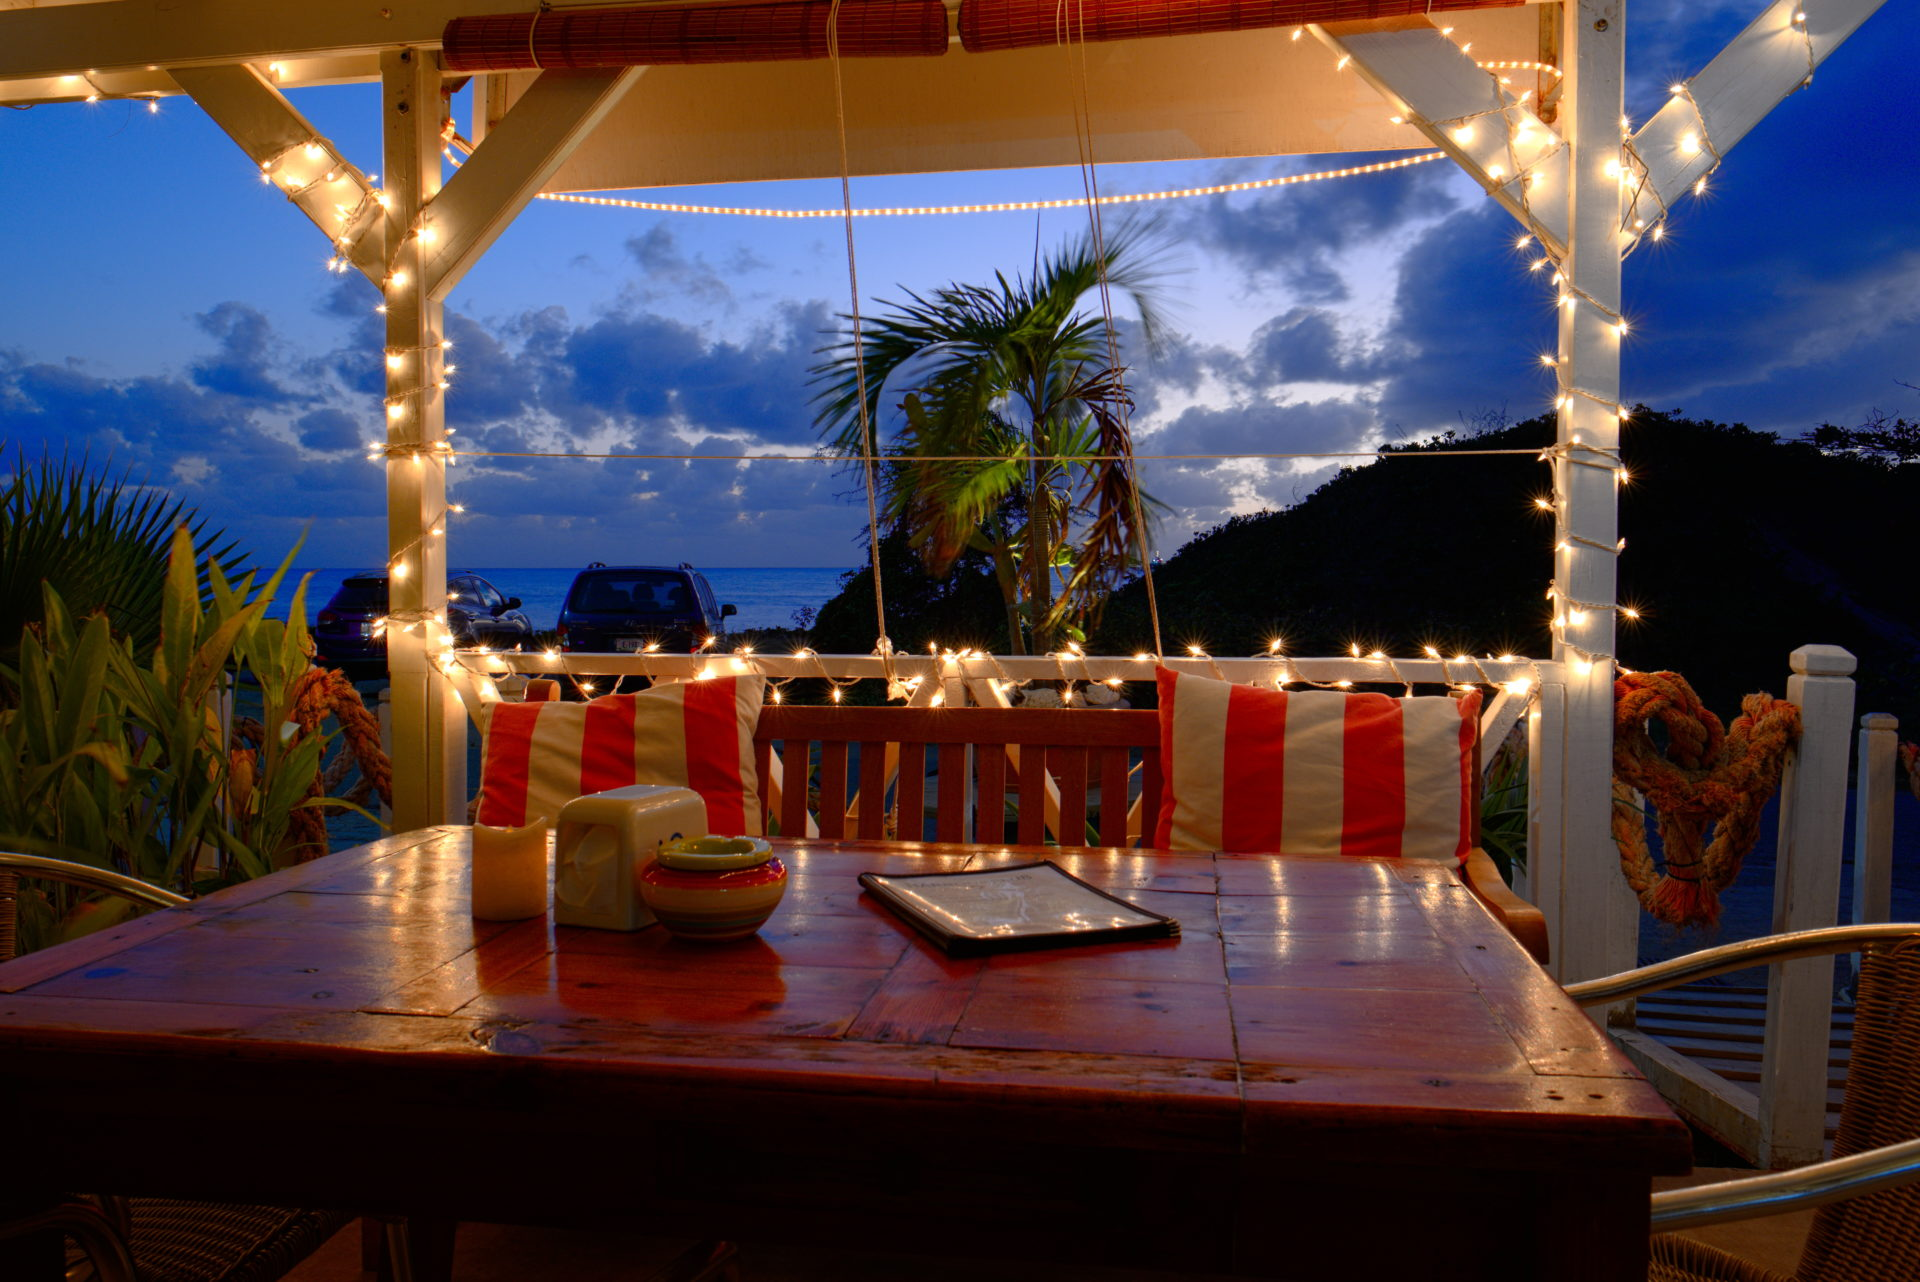 Restaurant Harbourclub Statia Is Located Right Next Door To The Orange Bay Hotel It Serves Also As Front Desk Of